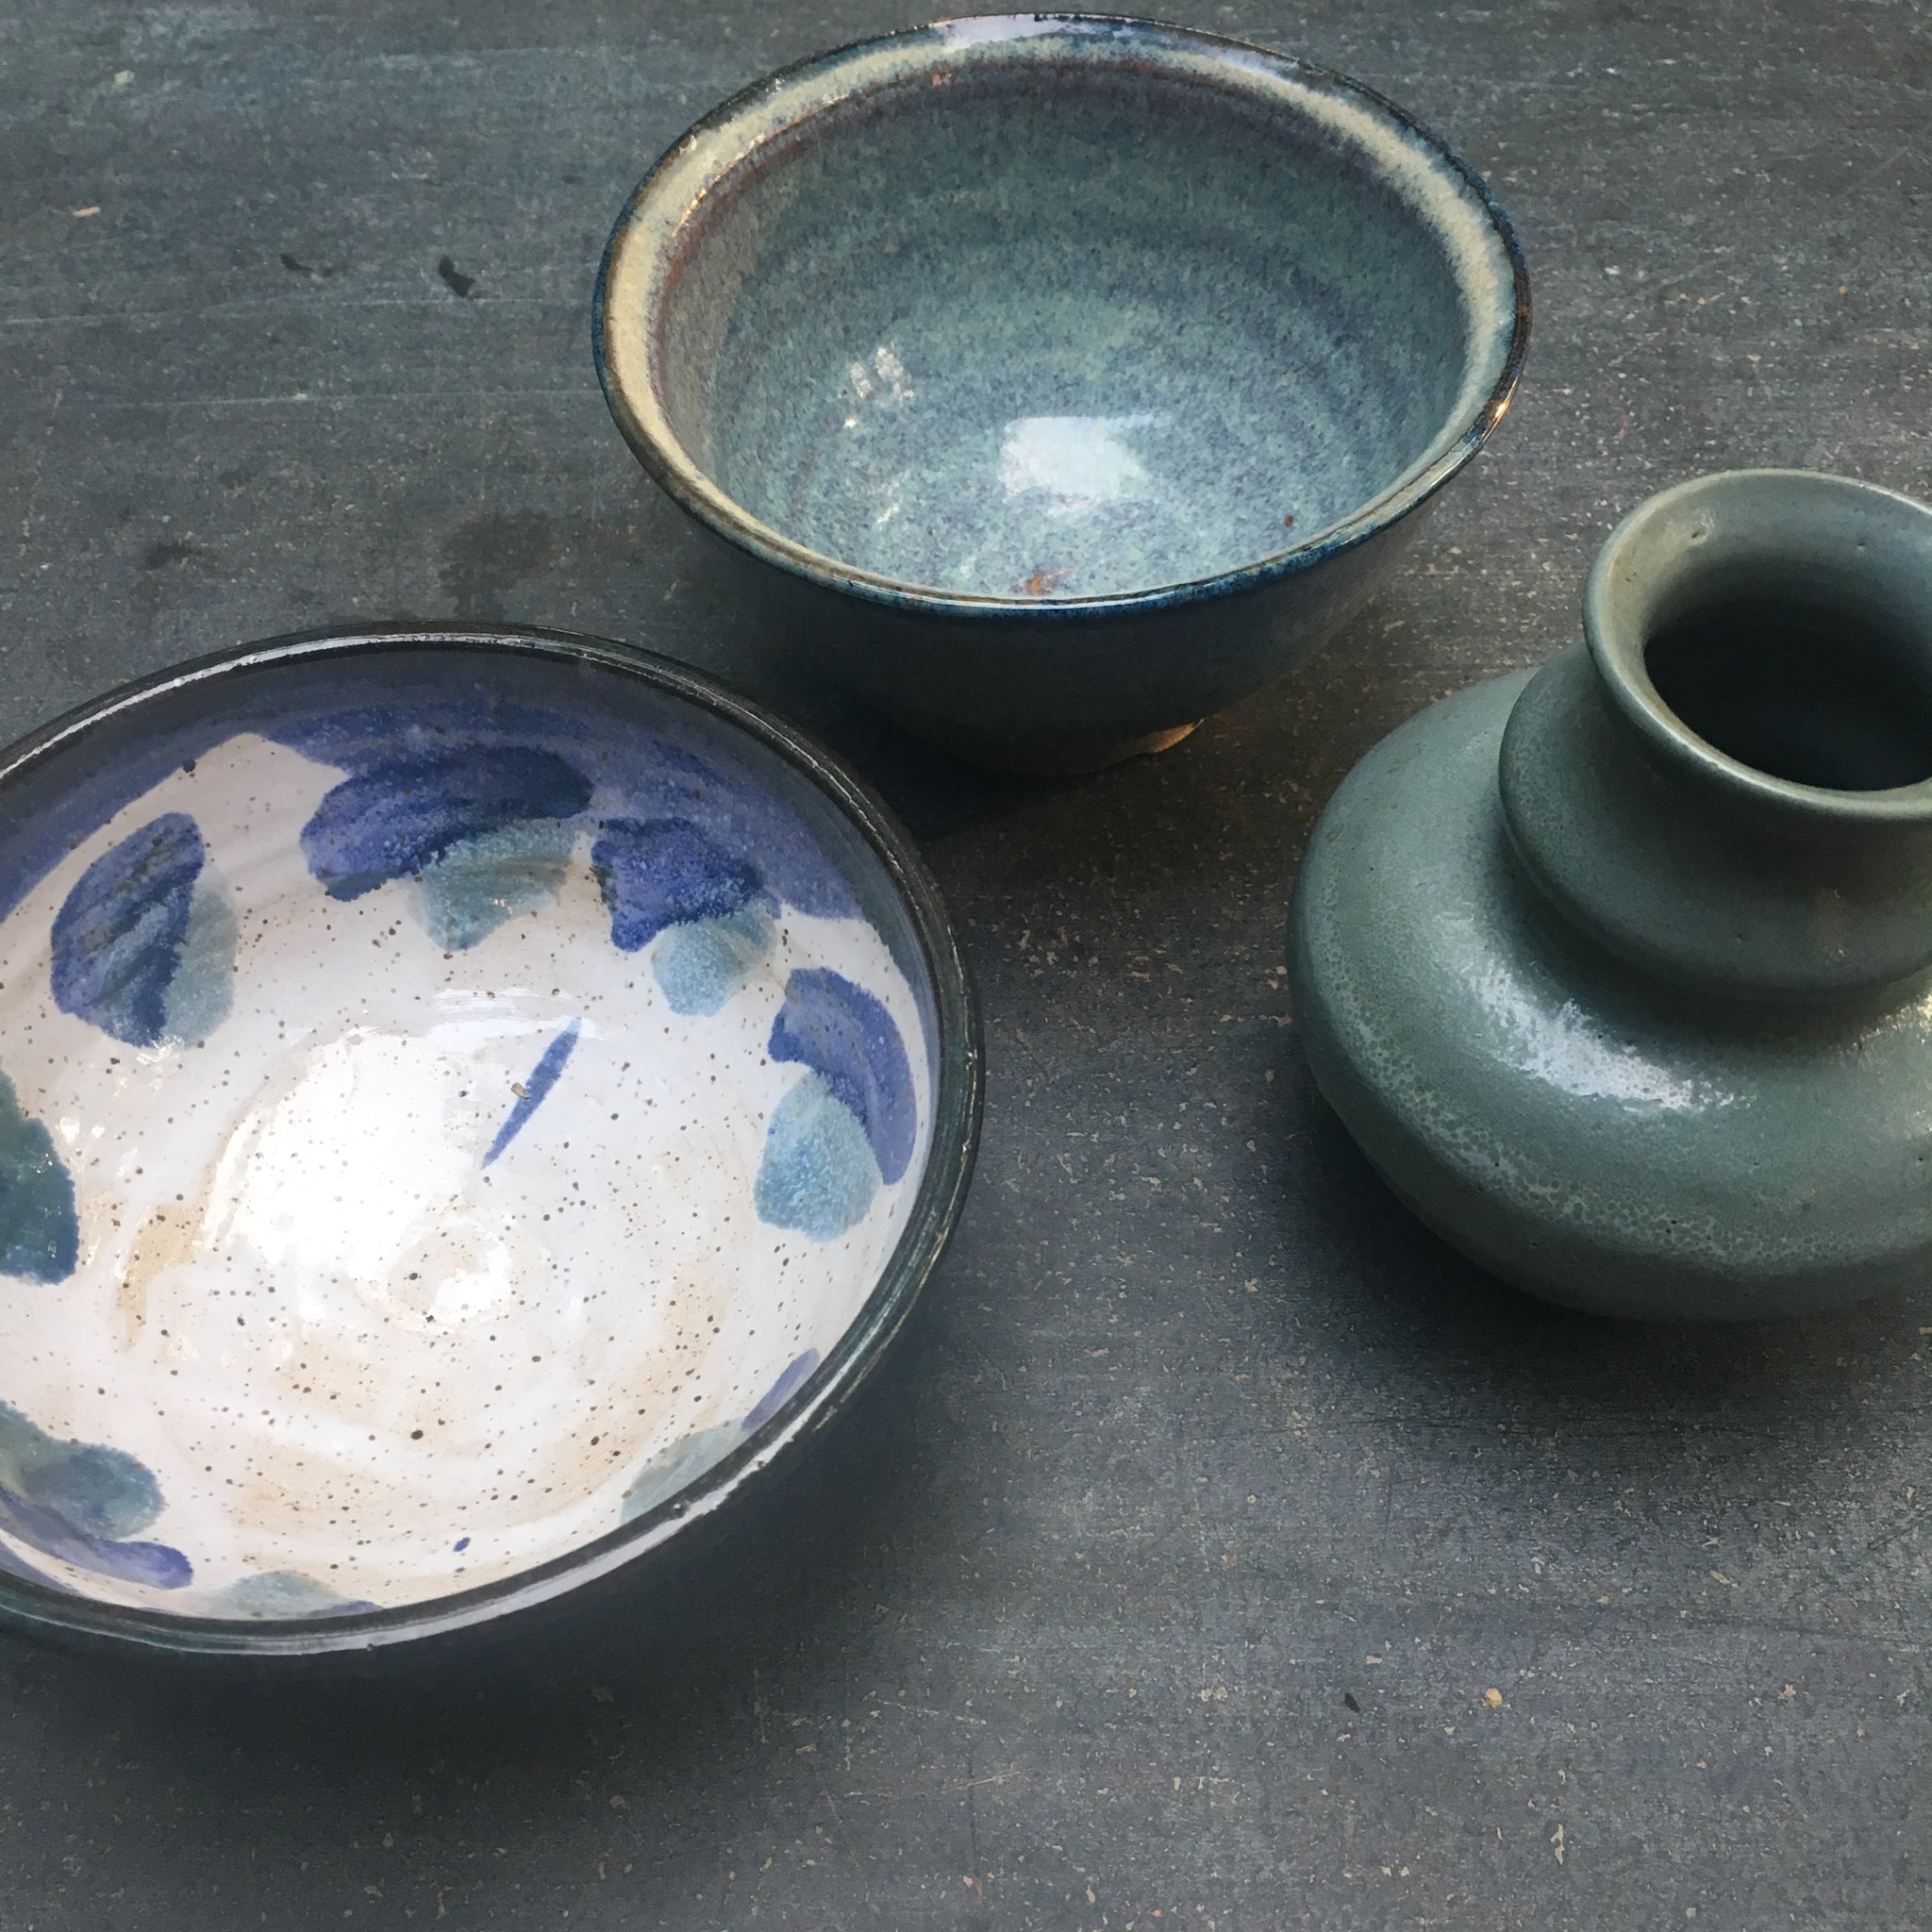 Studio Pottery Lot Vintage Trio of Studio Pottery in shades of blue